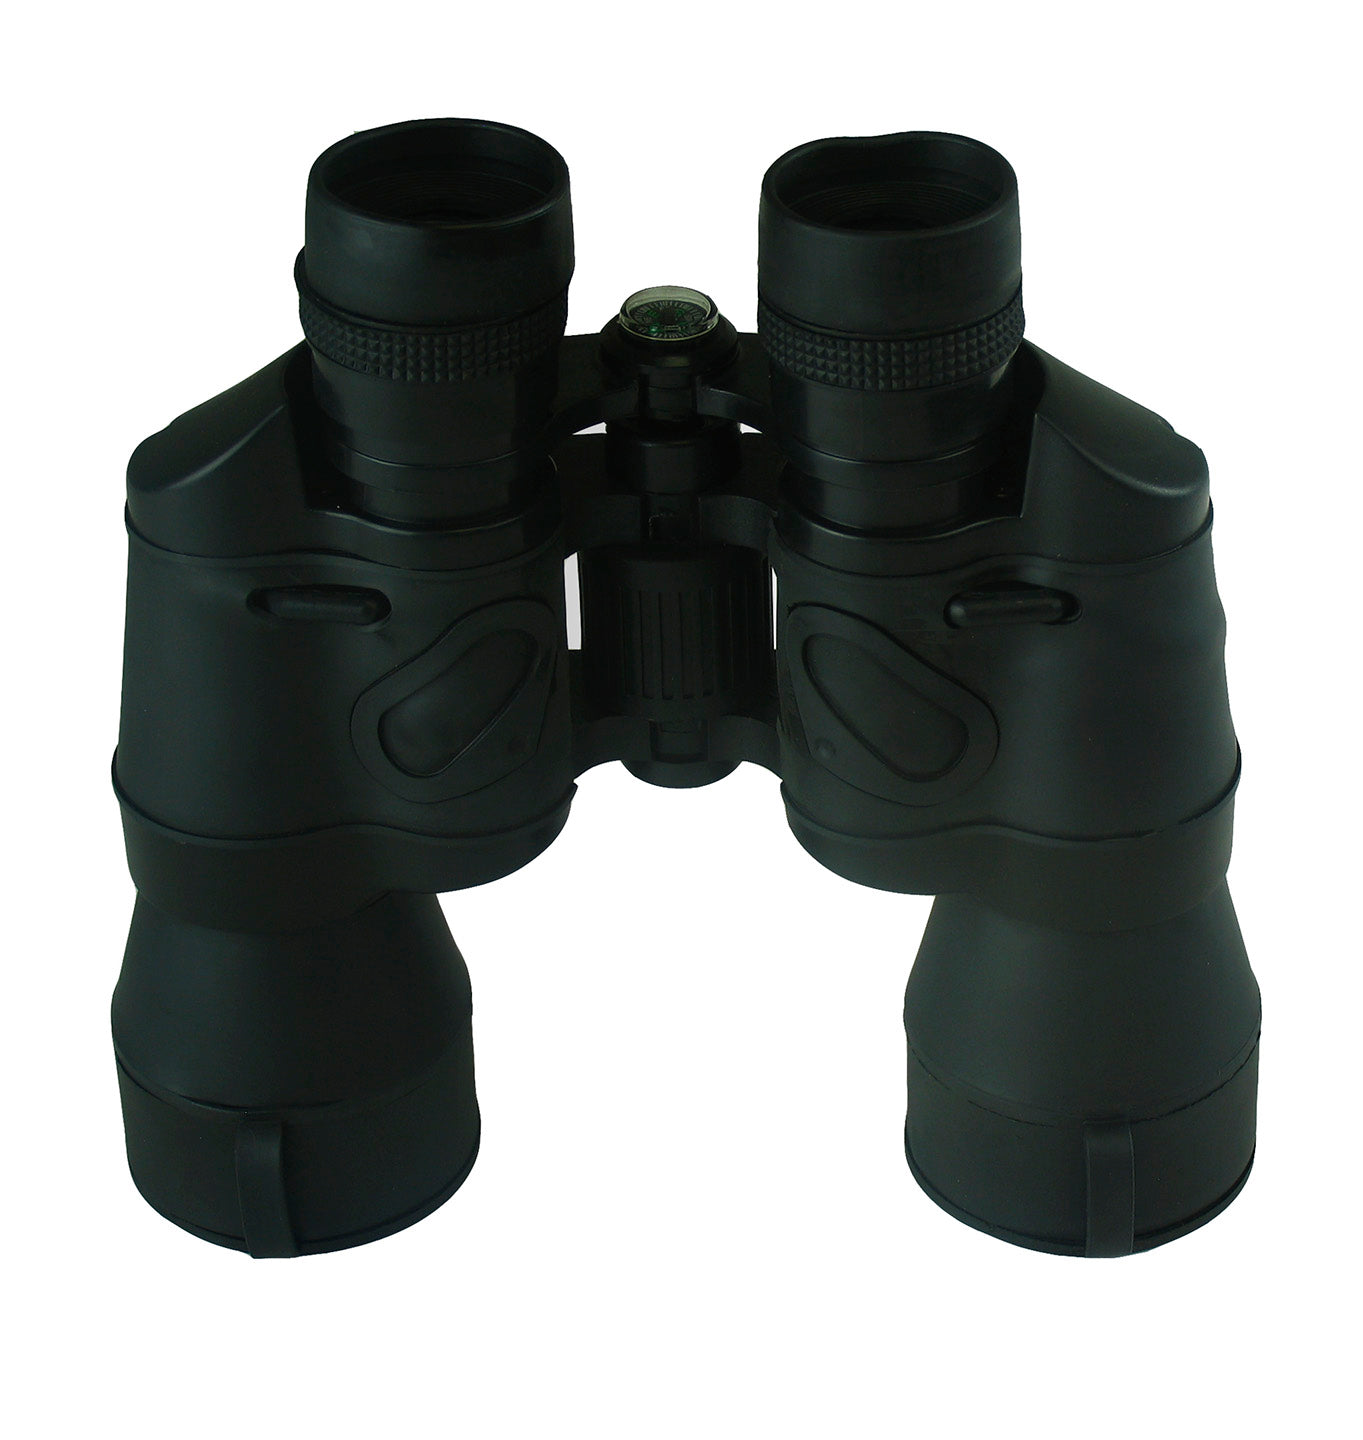 Get your own, excellent pair of binoculars from Everything Summer Camp.